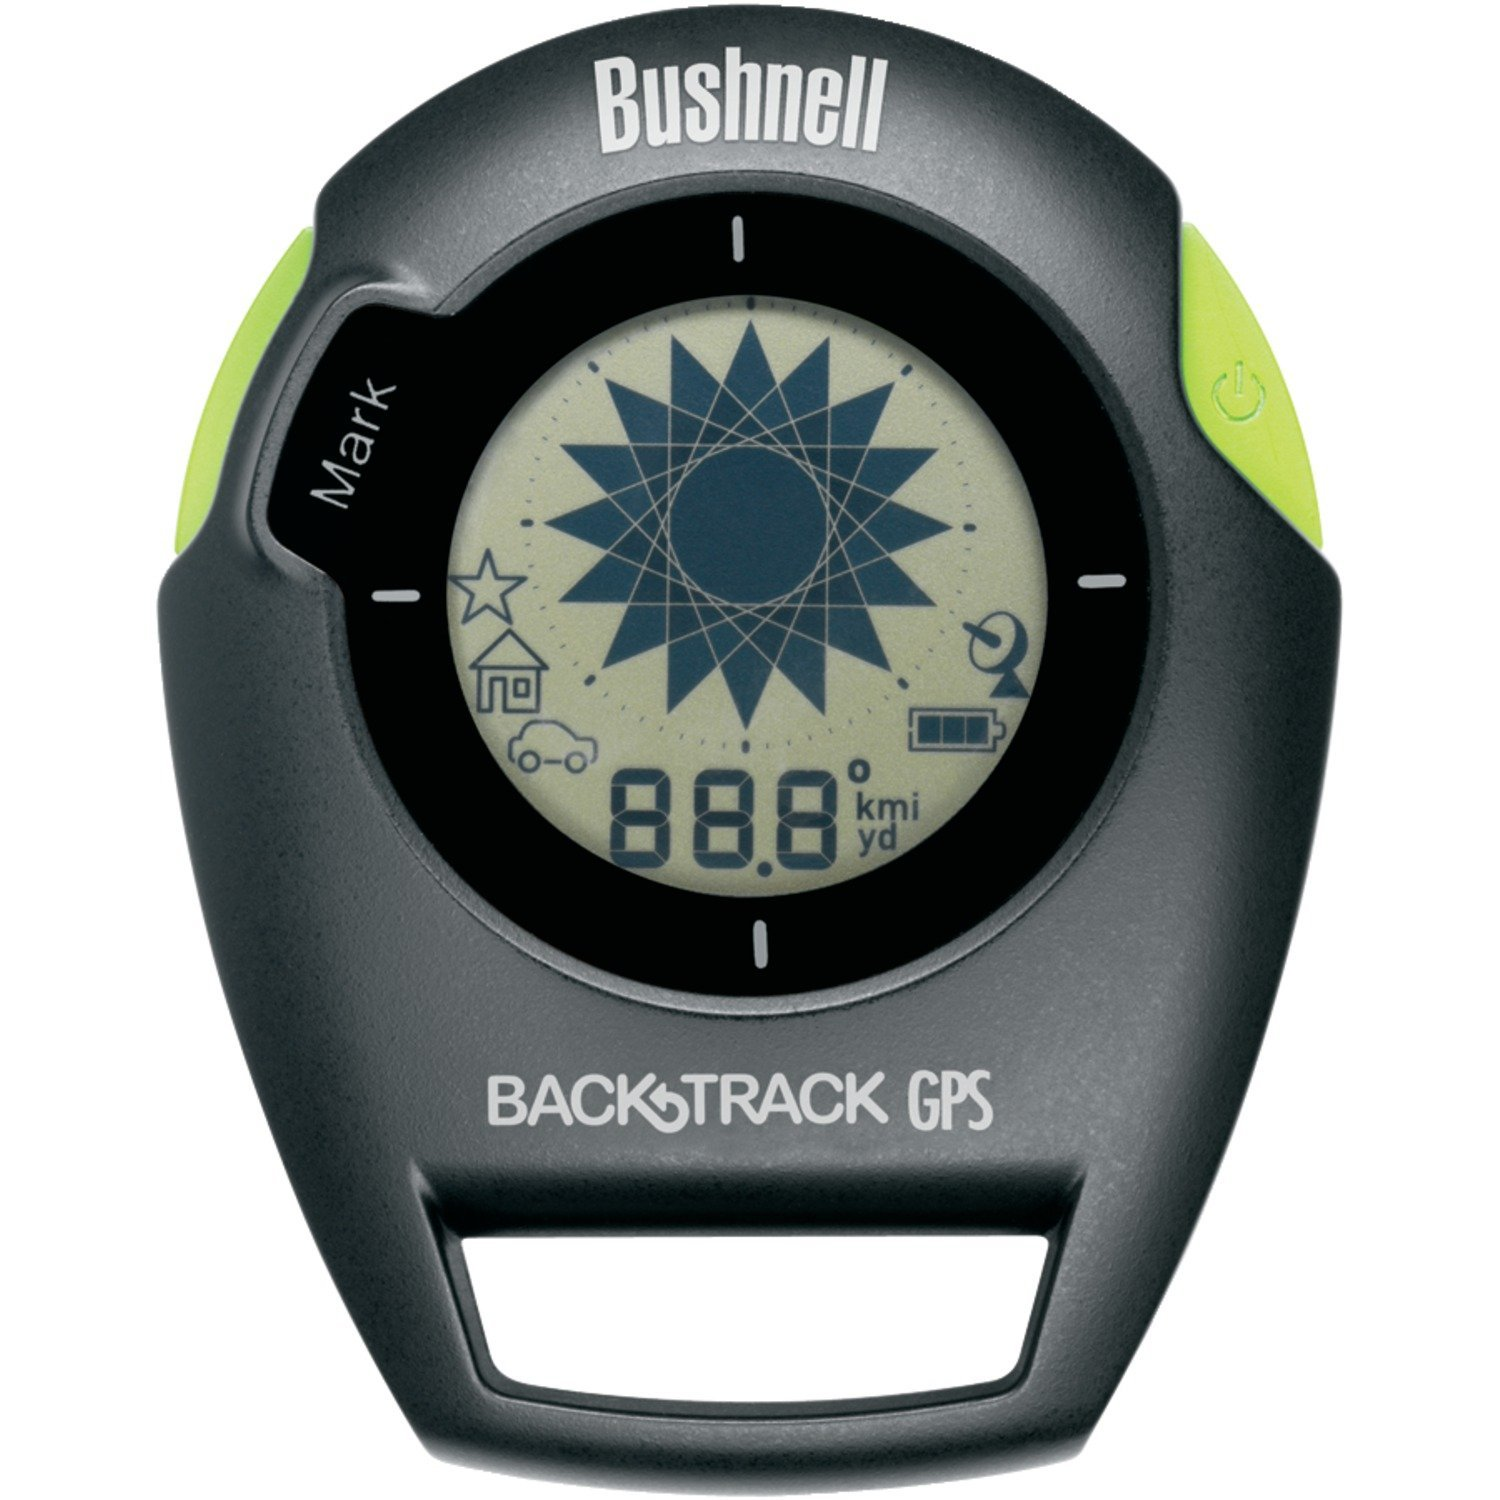 Bushnell BackTrack Original G2 GPS